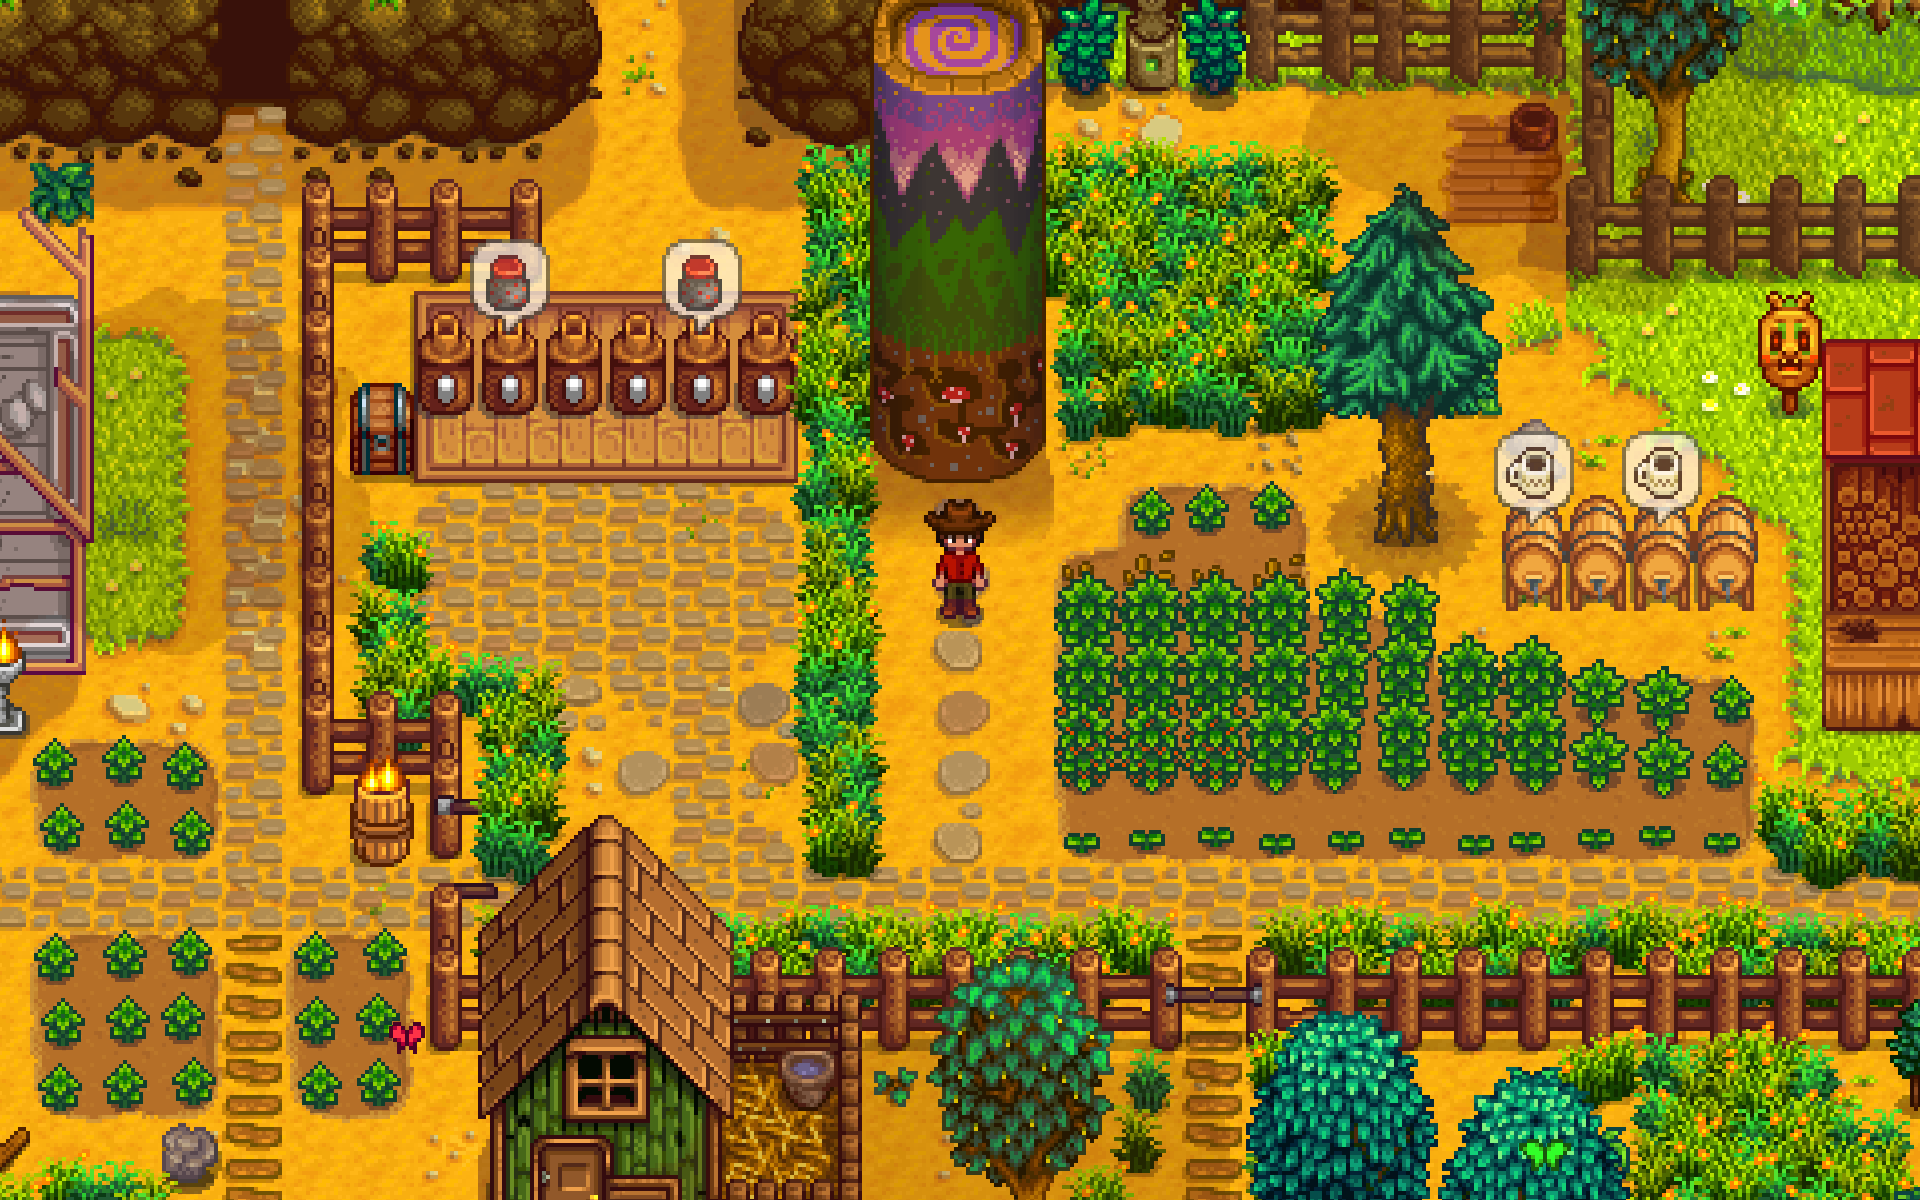 Stardew Valley, spiritual successor to Harvest Moon, is coming to